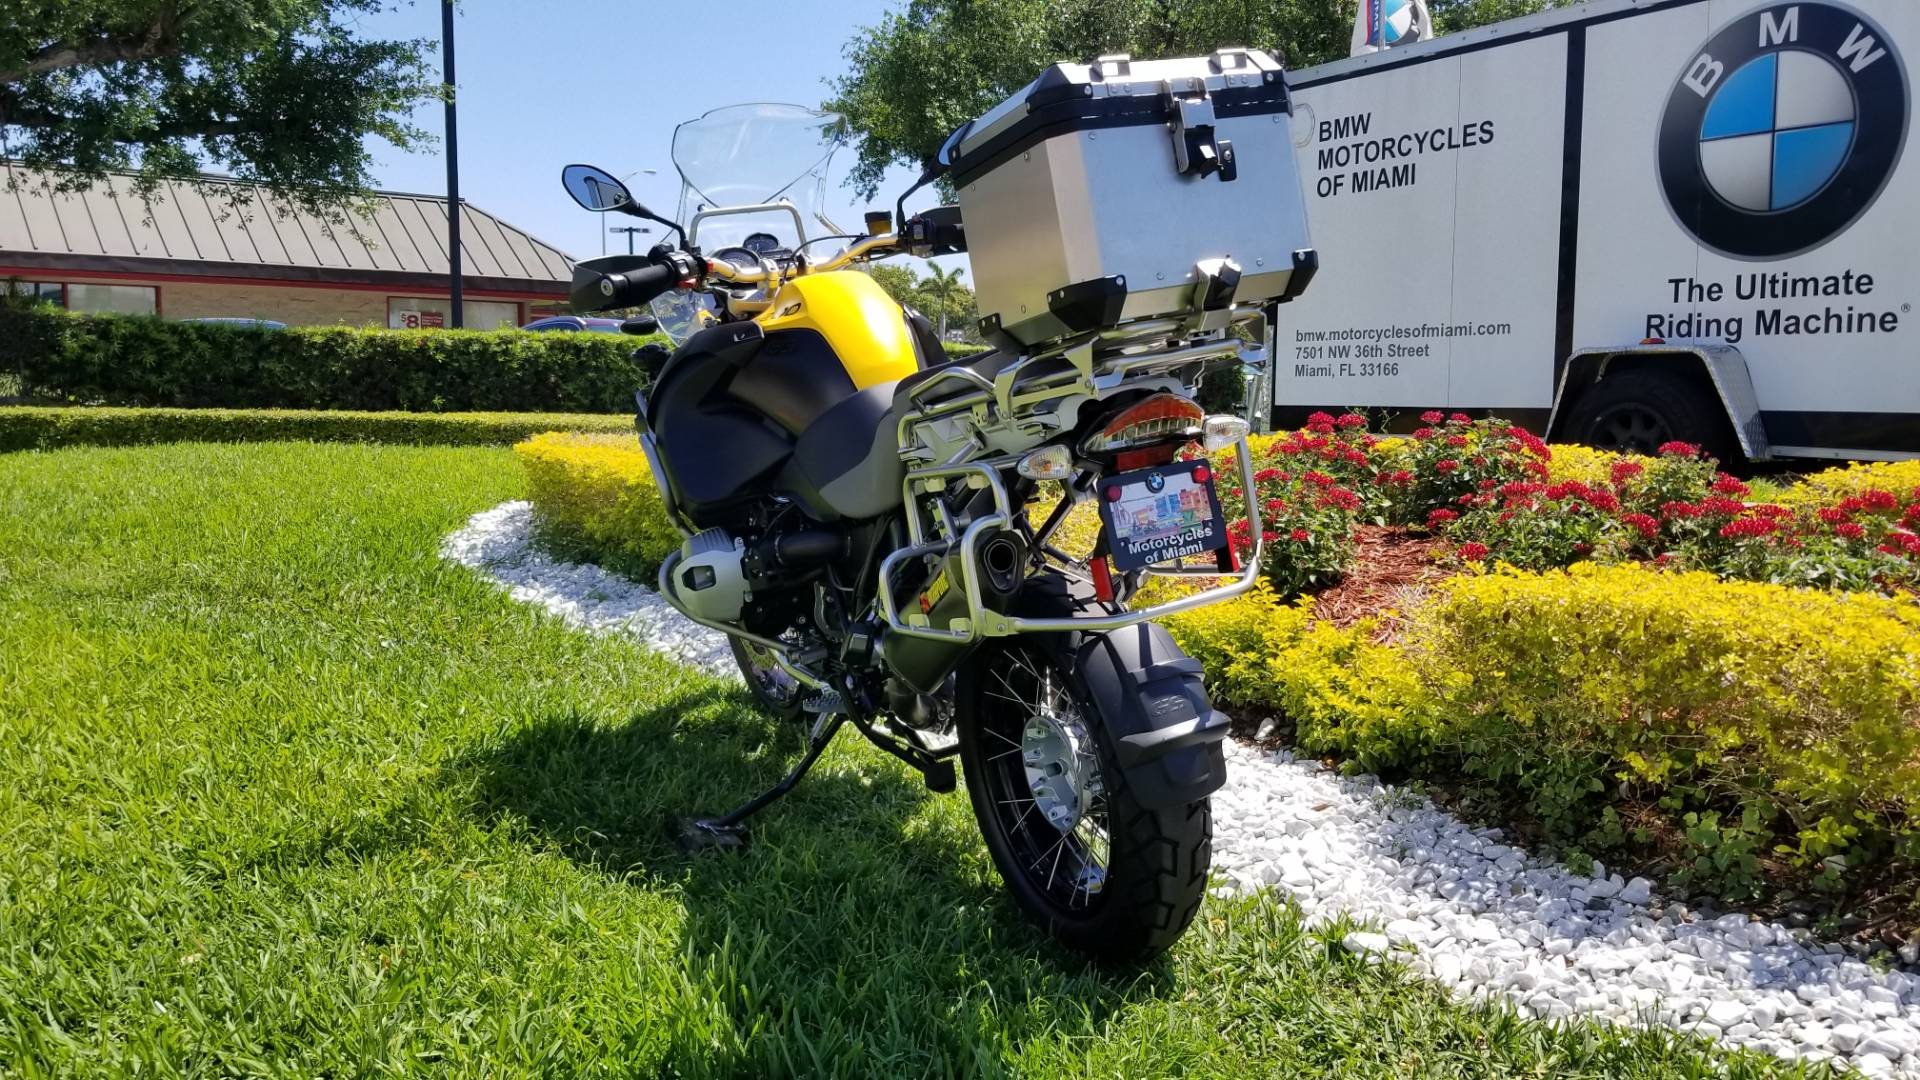 Used 2011 BMW R 1200 GSA For Sale, Pre owned BMW R 1200GSA For Sale, BMW Motorcycle R1200GSA, BMW Motorcycles of Miami, Motorcycles of Miami, Motorcycles Miami - Photo 11